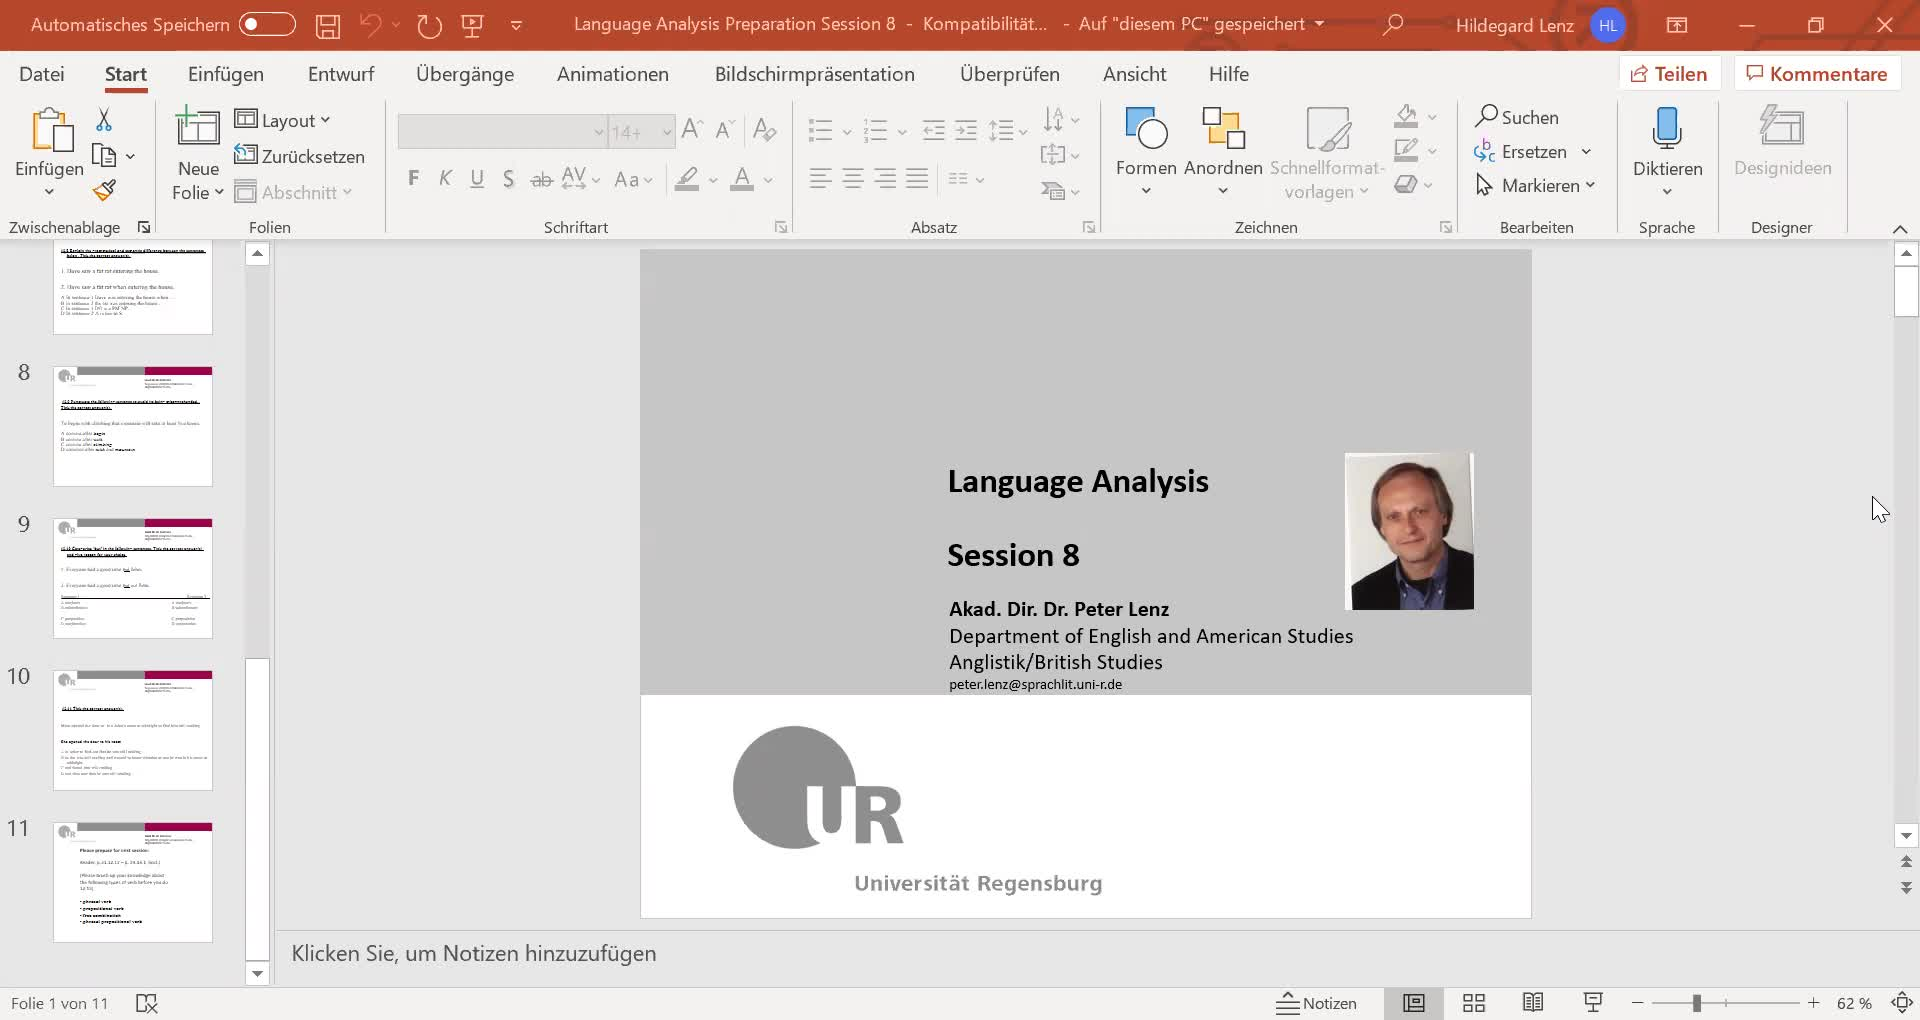 Language Analysis Session 8 Video